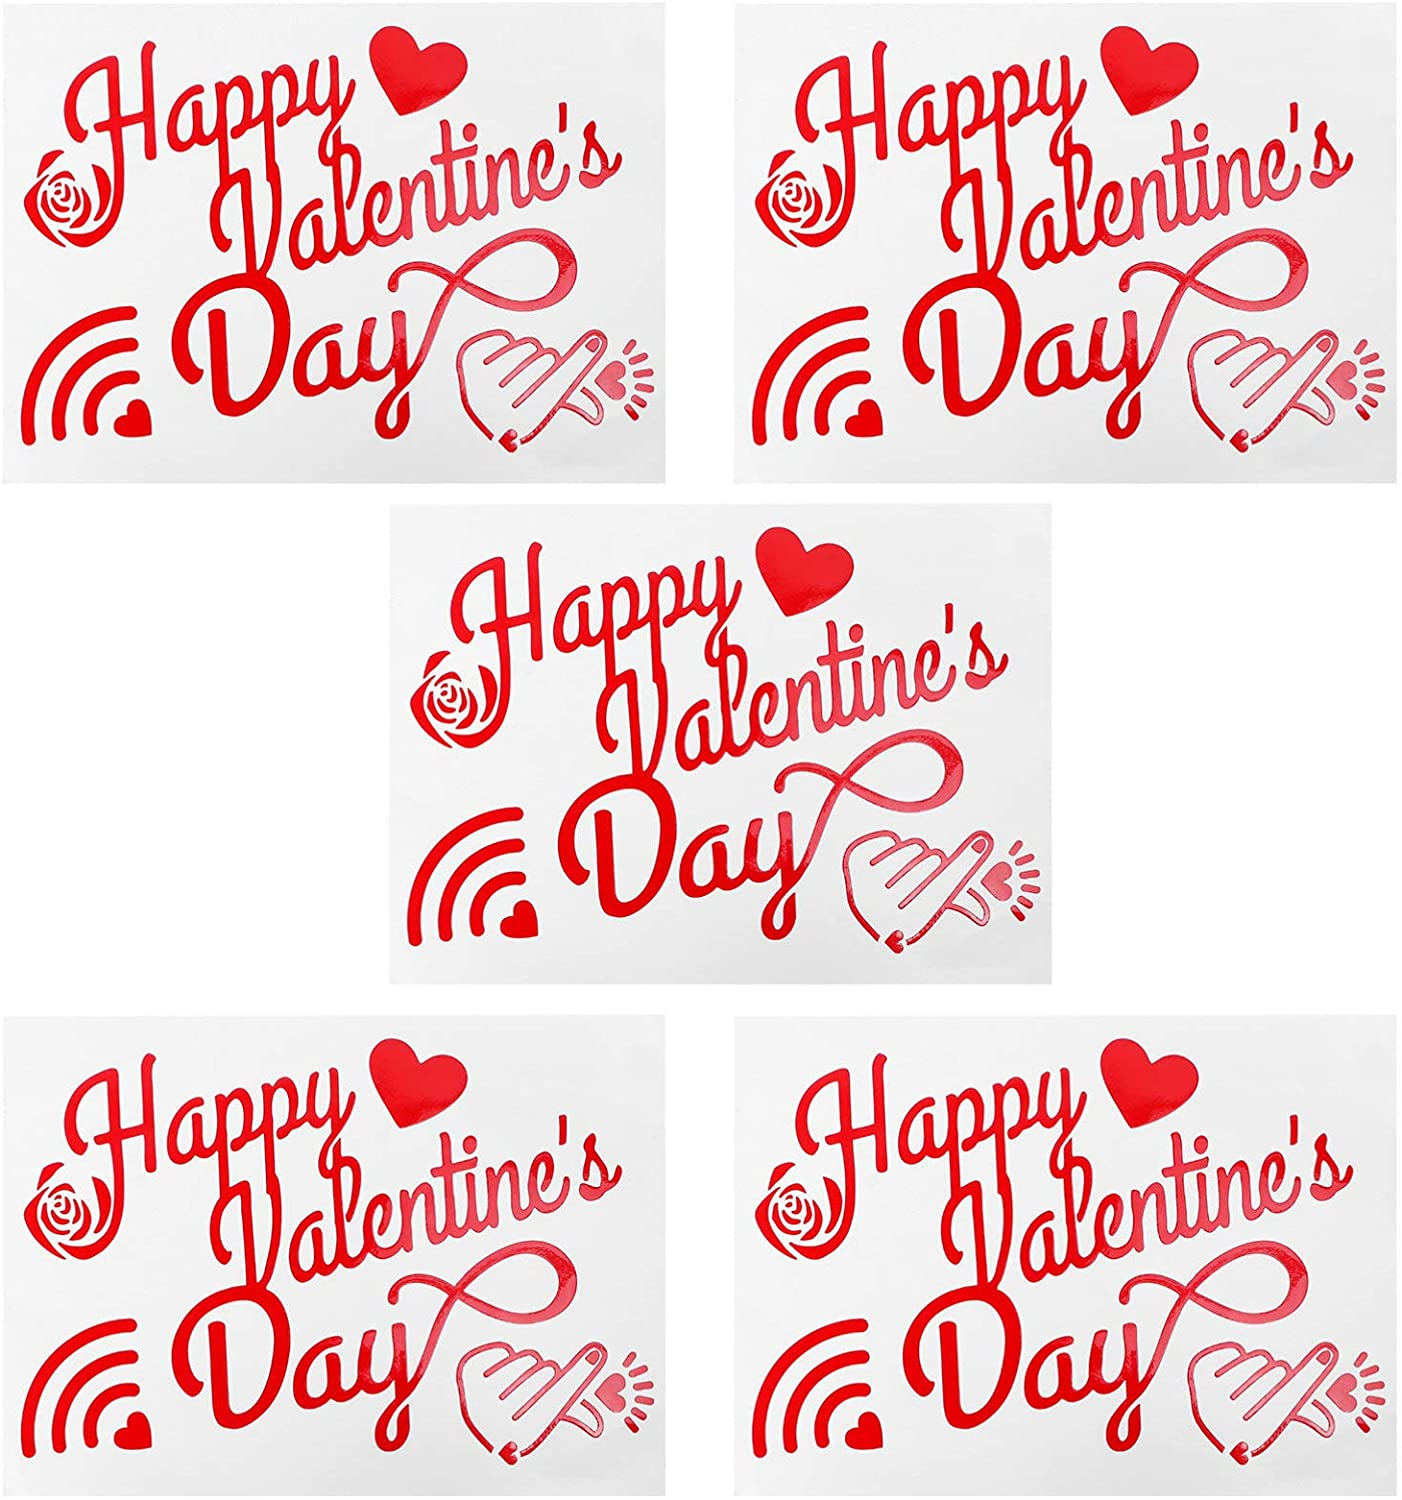 Happy Valentines Day KESYOO 5pcs Valentines Day Heart Stickers Letters Balloon Stickers Bobo Balloons Stickers Valentines Decorative Party Balloon Decals